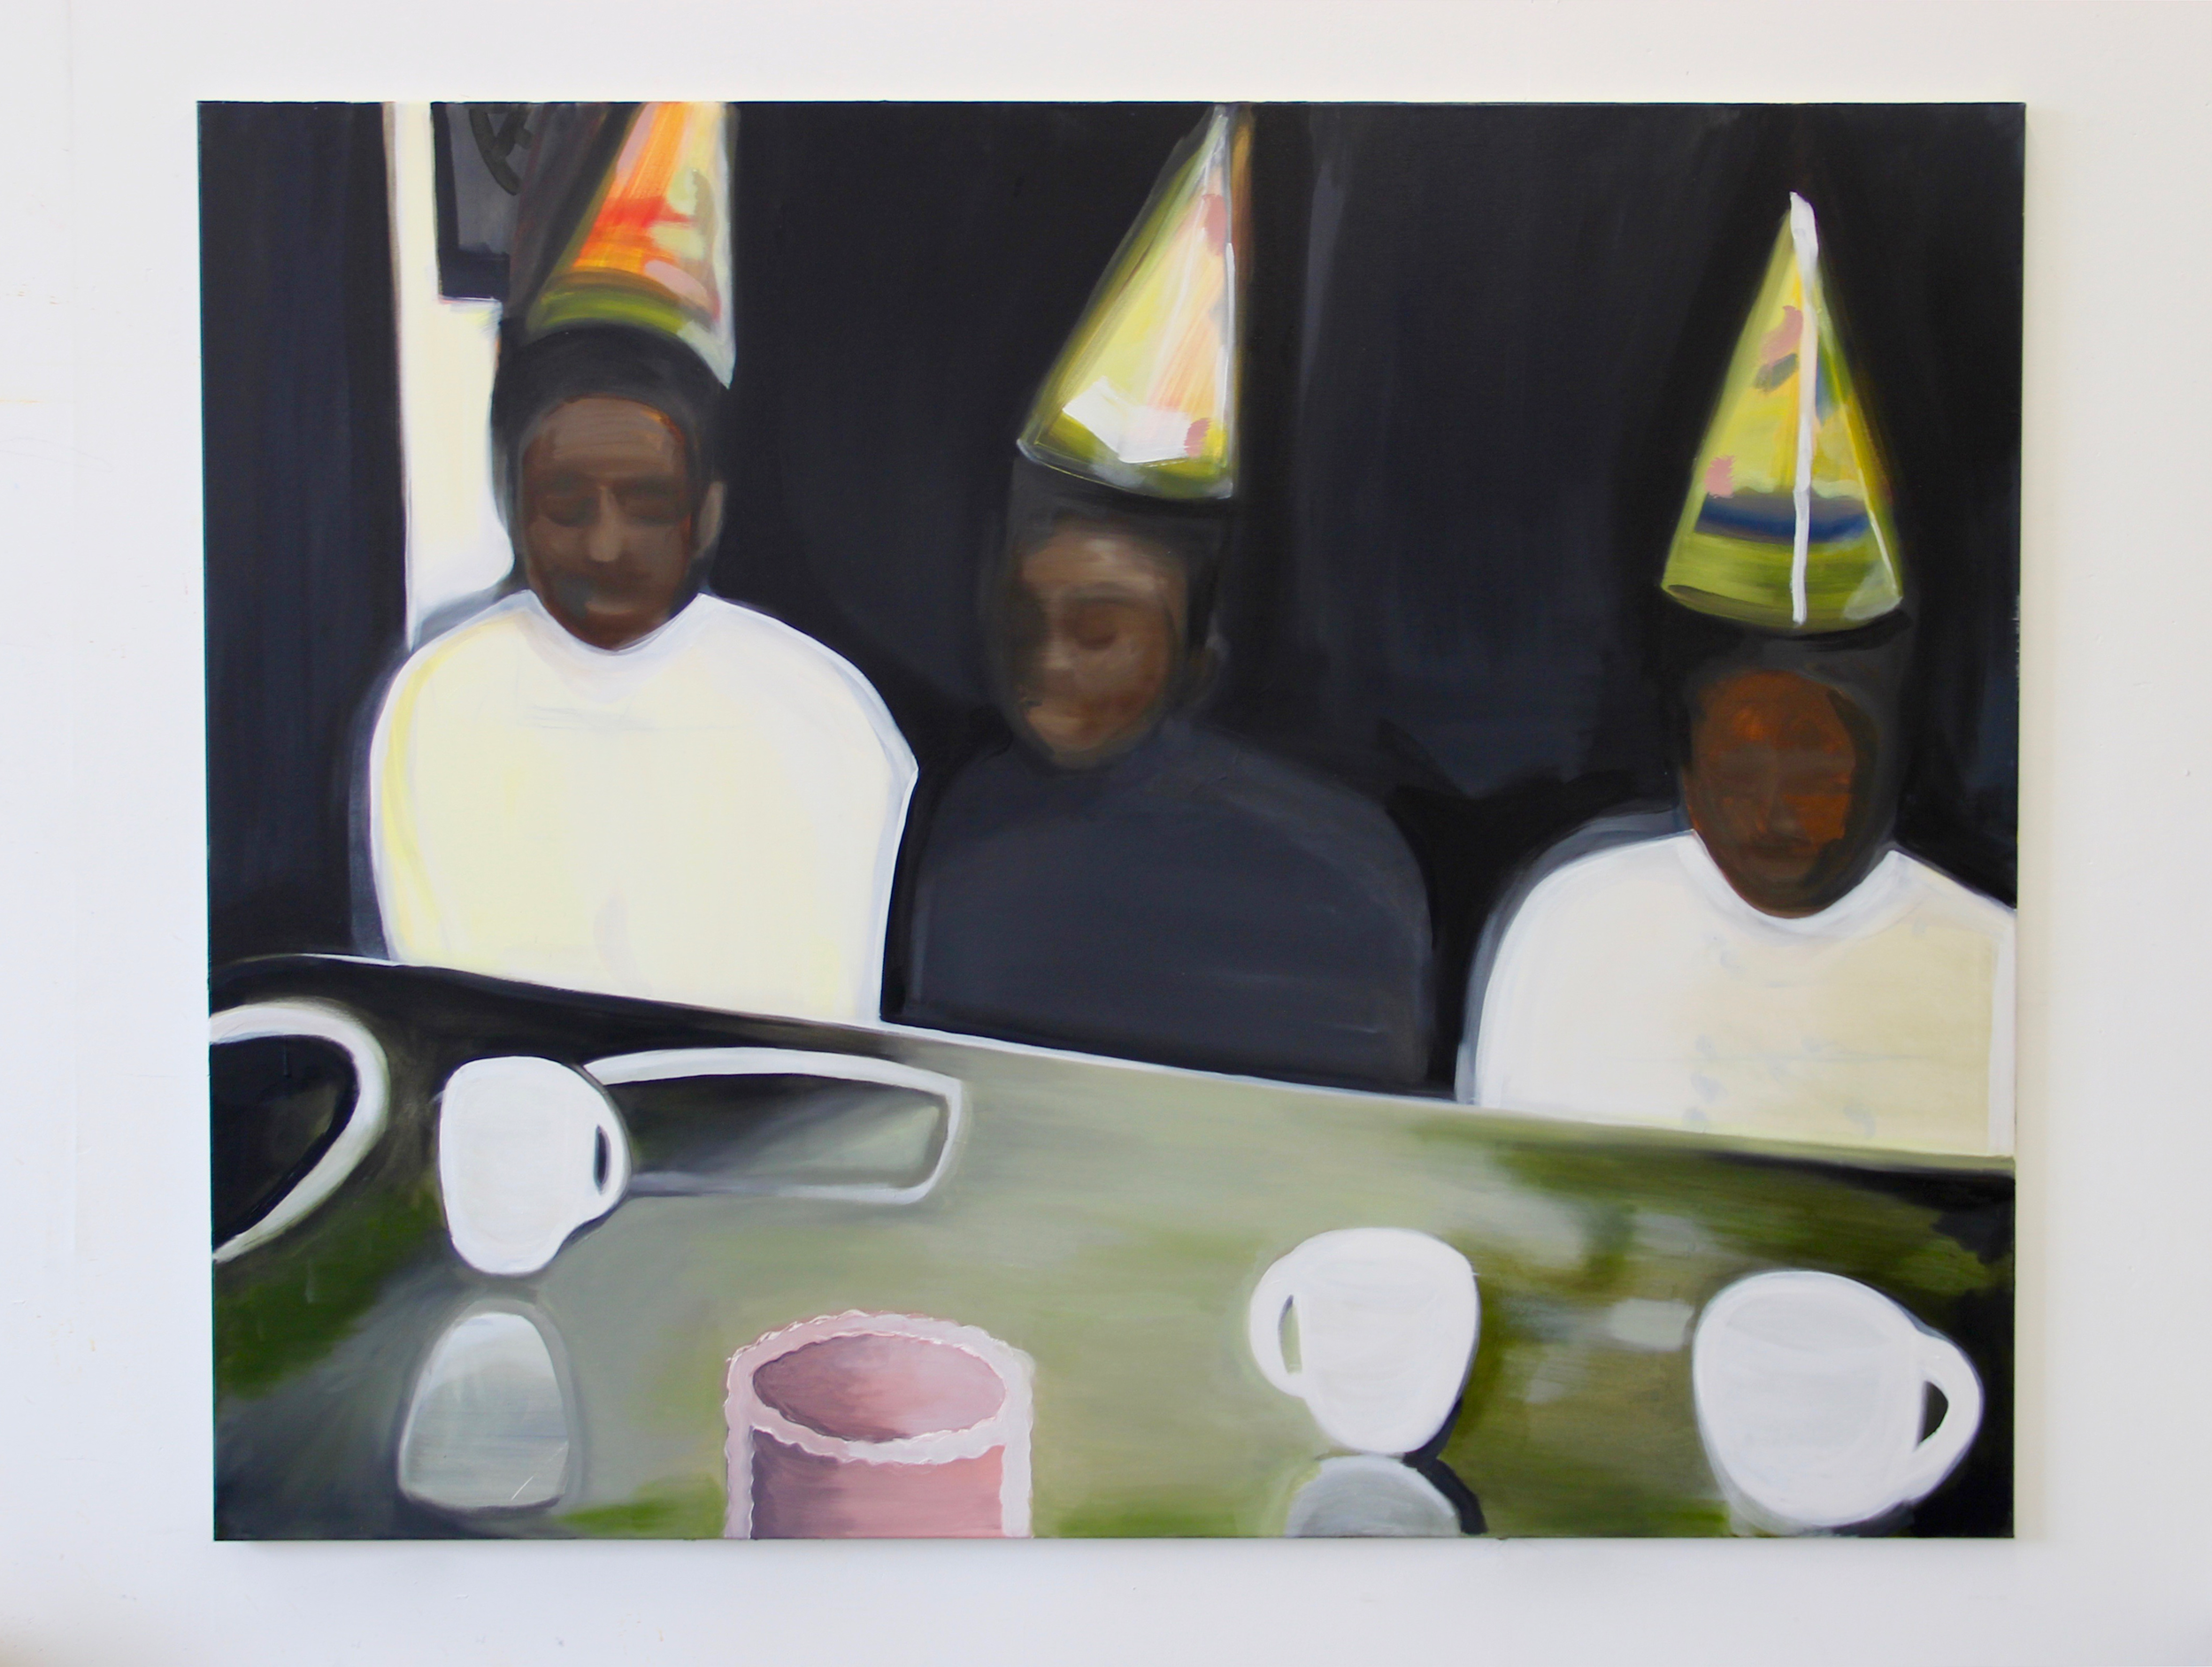 Birthday Party , 2018 Oil on canvas 48 x 60 inches